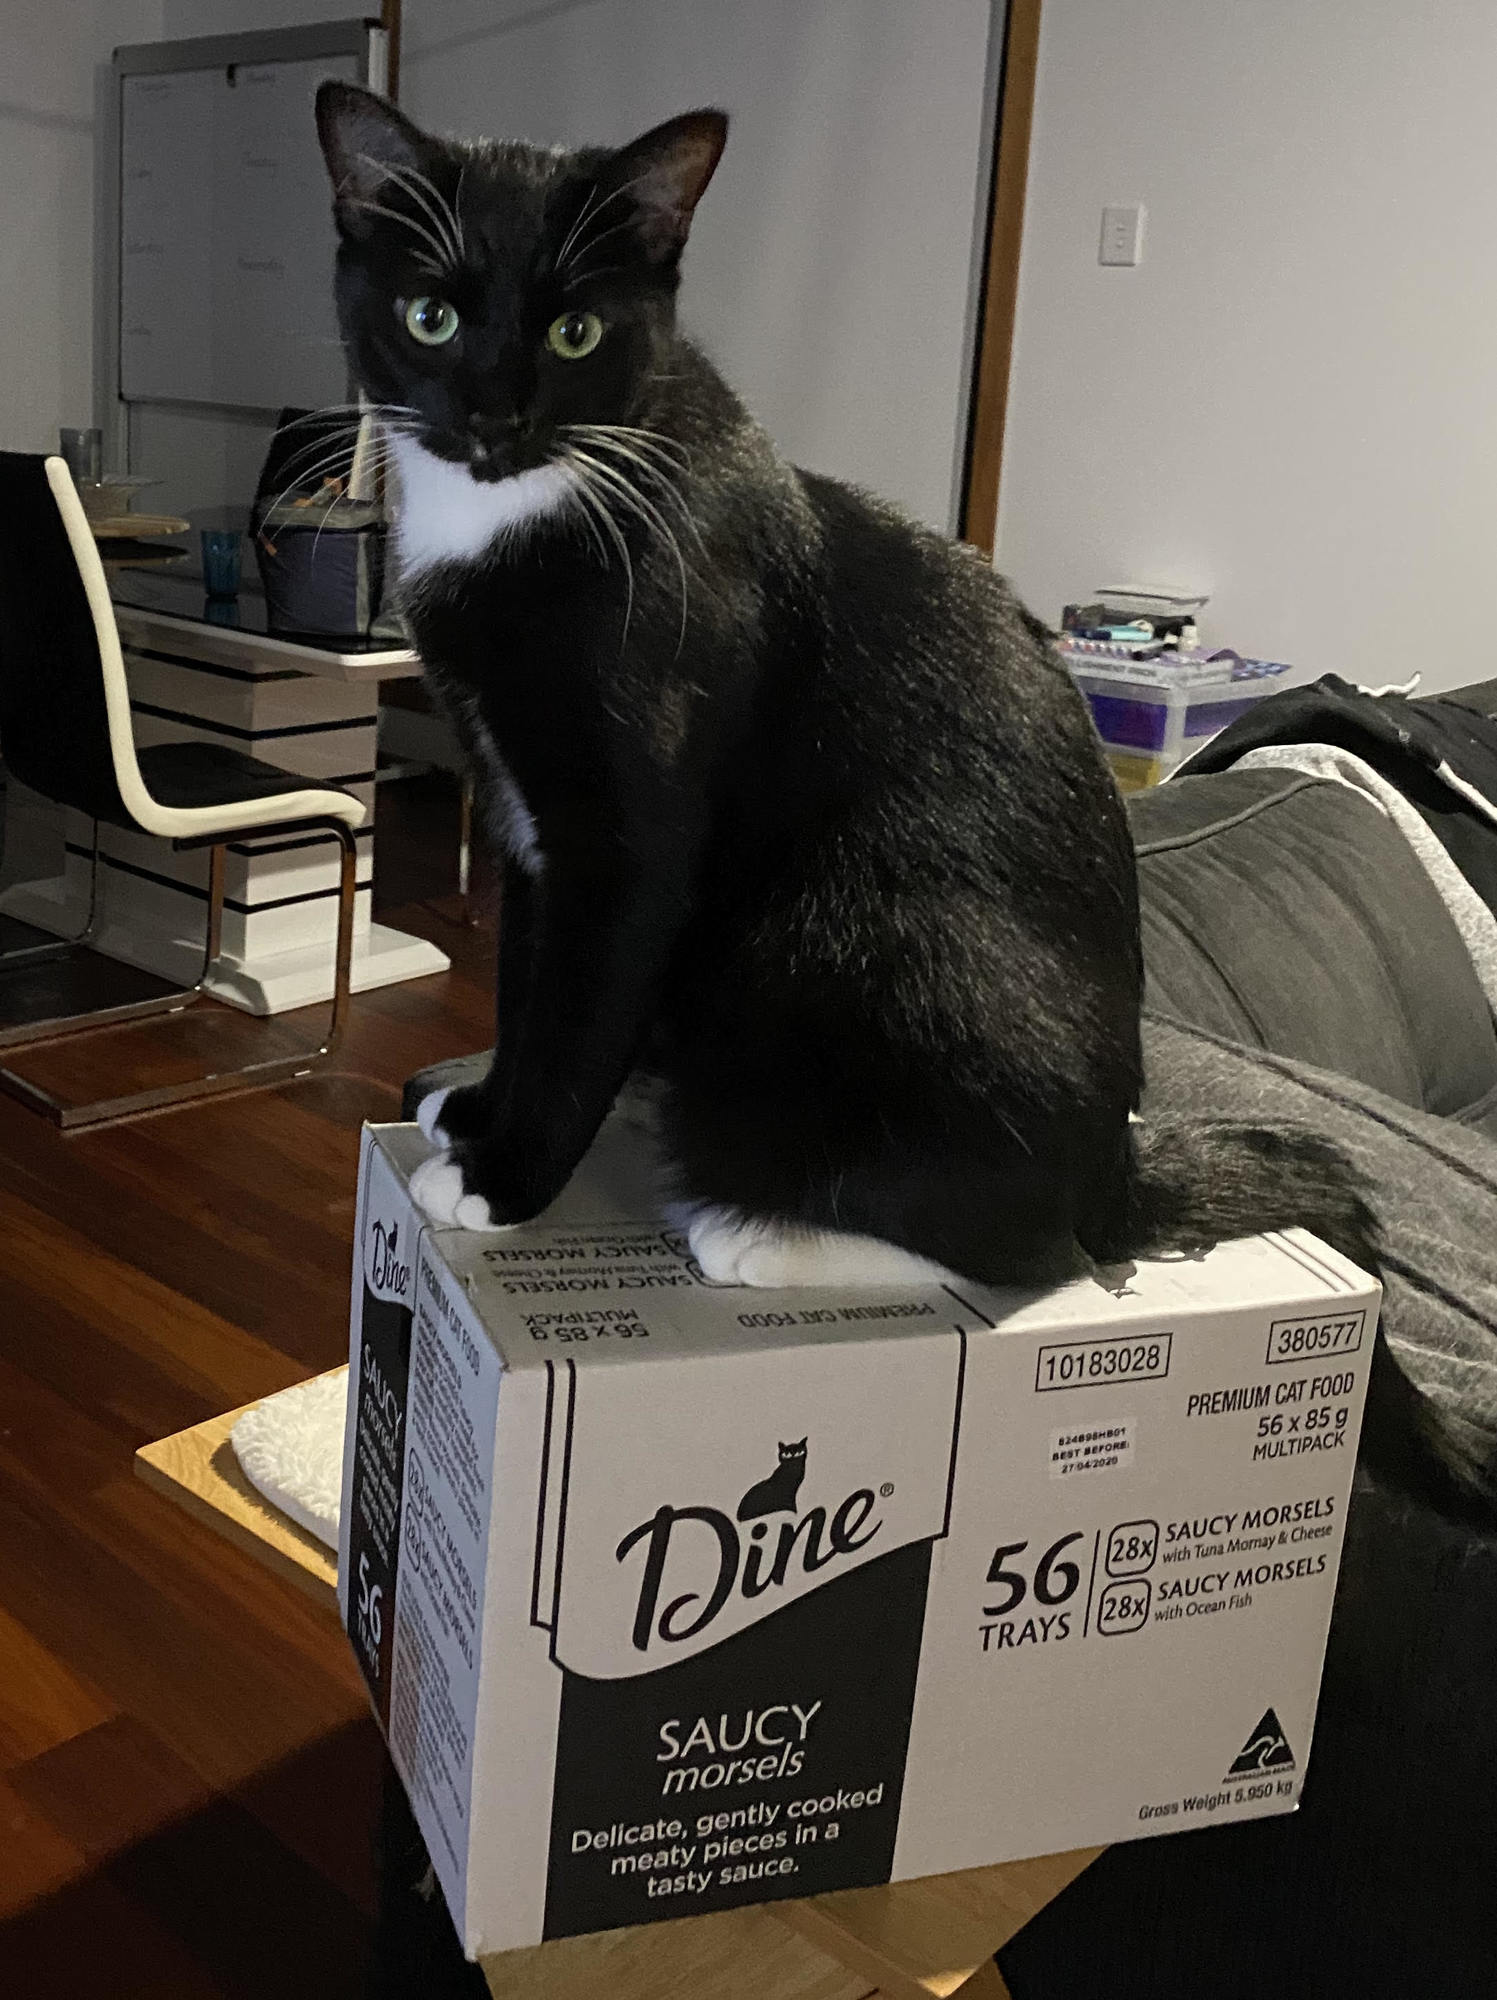 cat posing for the camera sitting on top of a carton of pet food